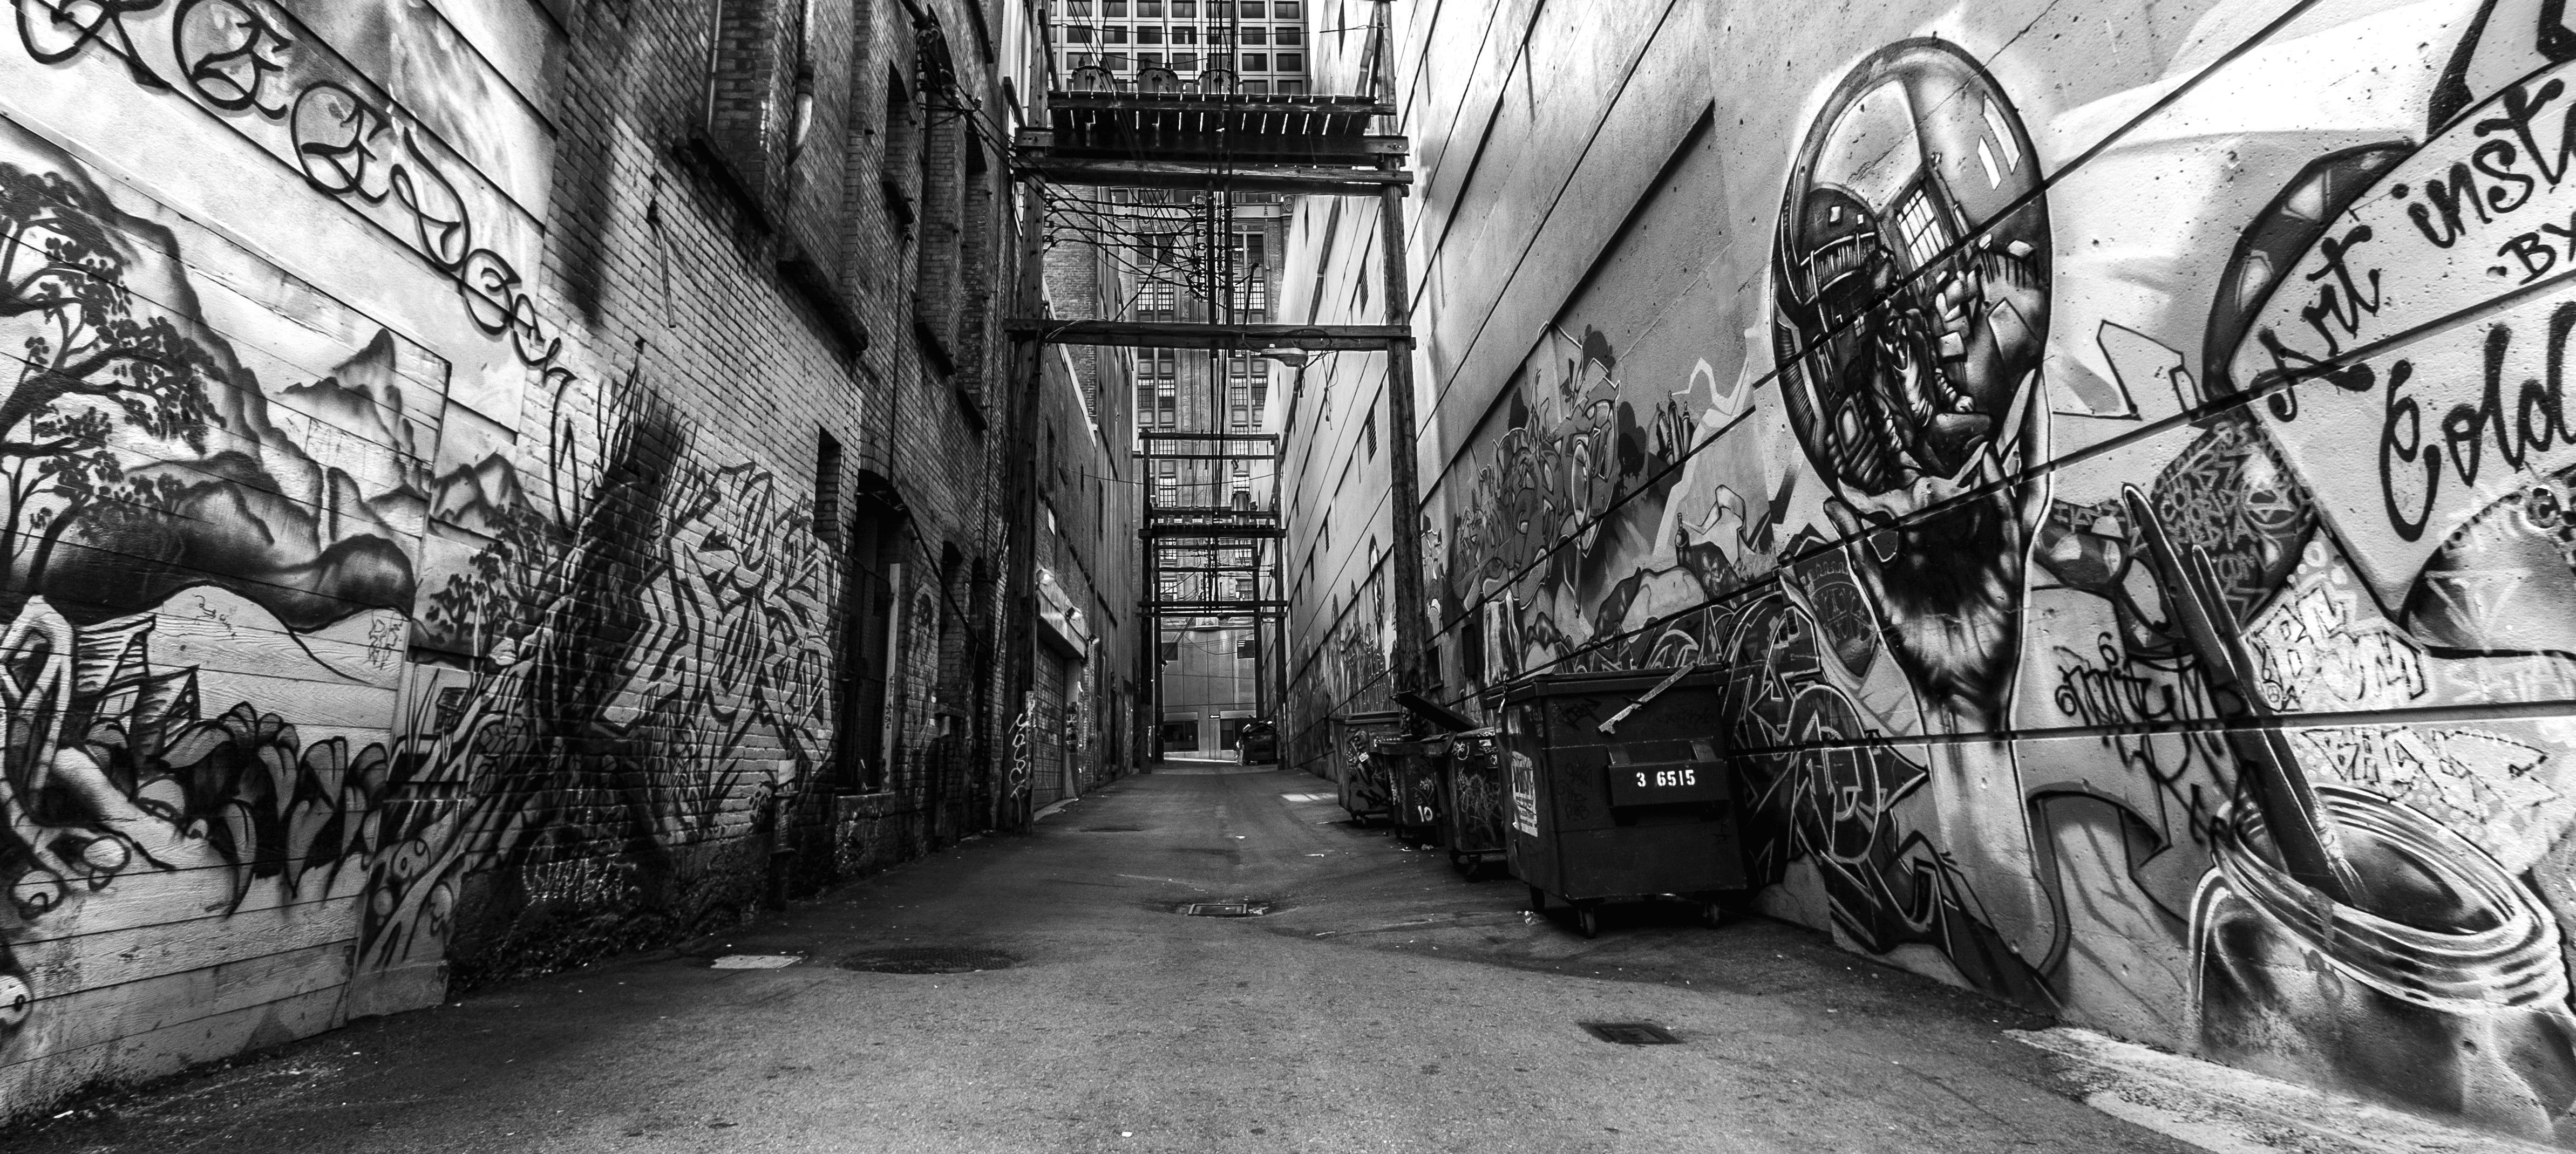 Graffiti Black And White Backgrounds Desktop Wallpapers . Curious In 2019